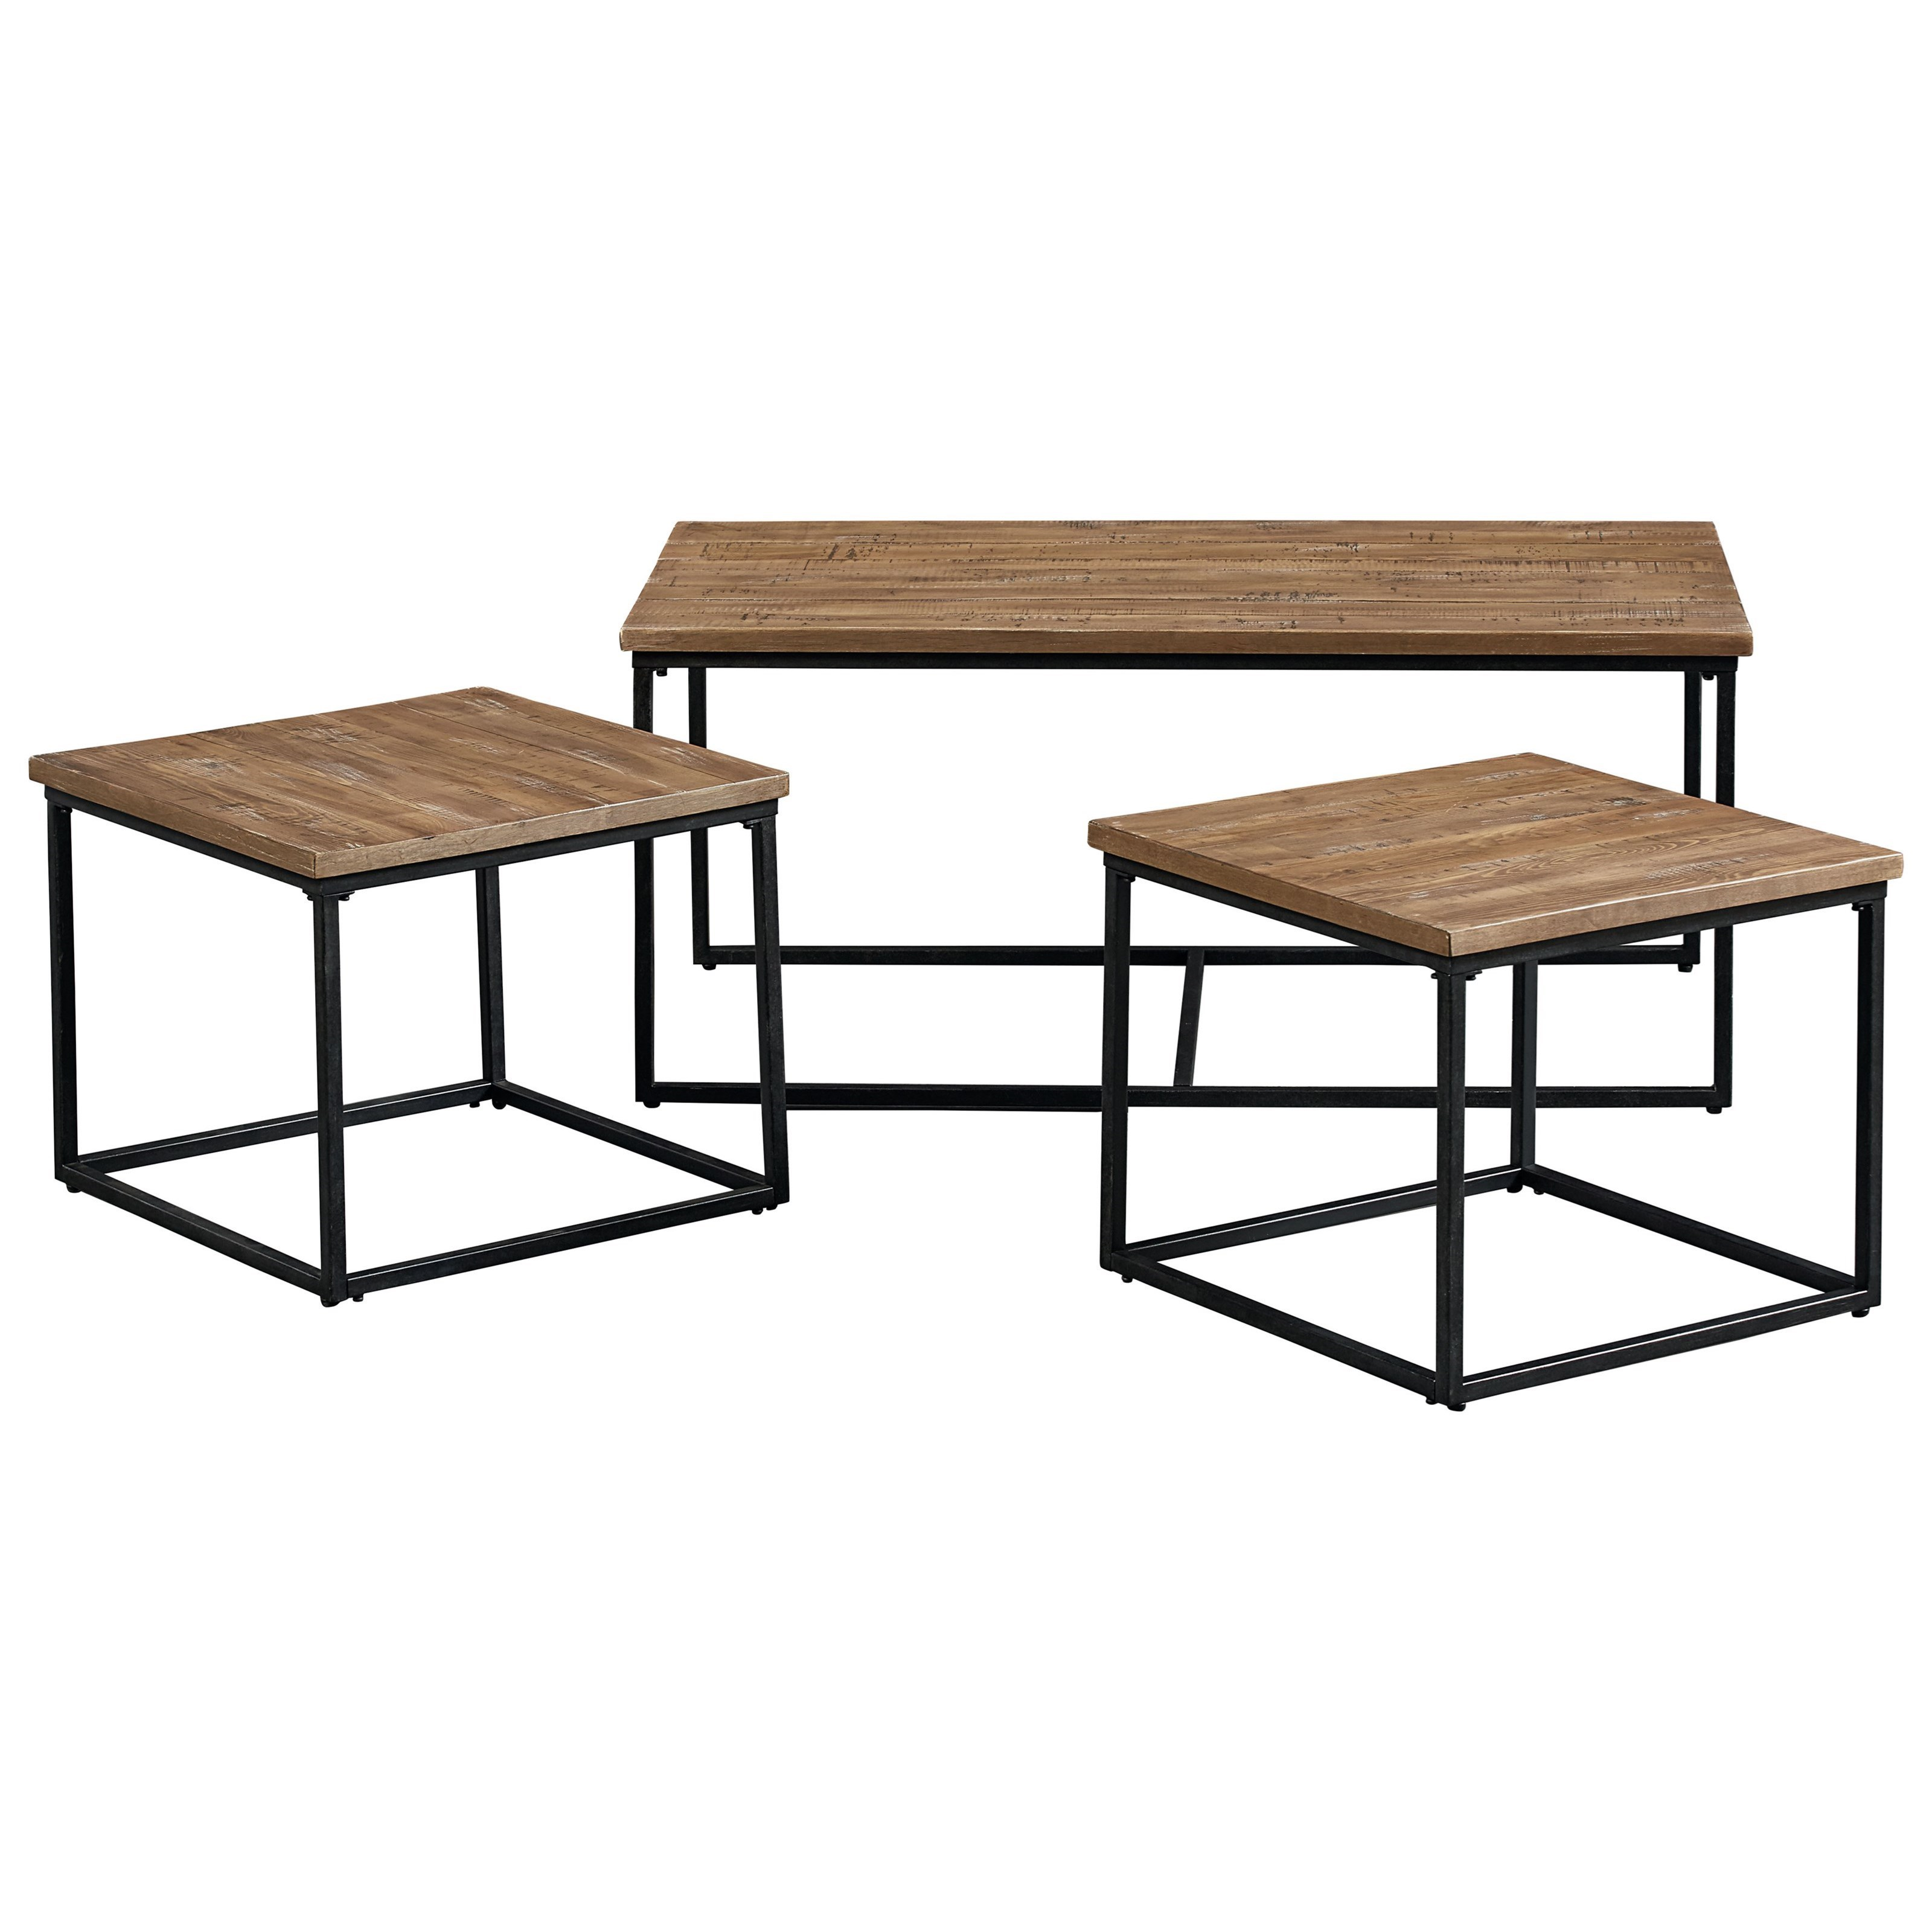 Genial Standard Furniture Ridgewood OccasionalOccasional Table Set ...